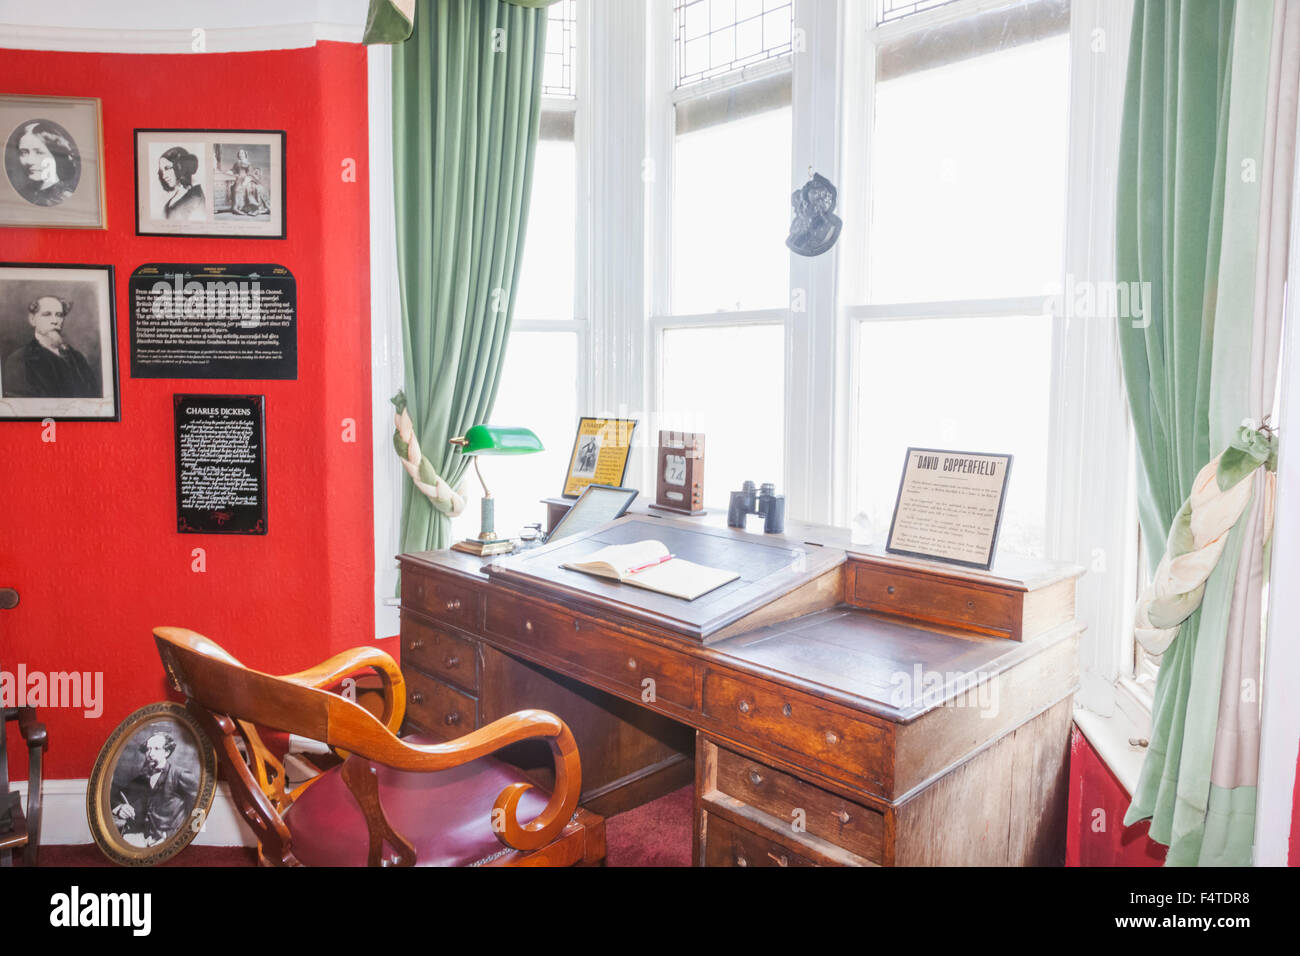 England, Kent, Broadstairs, Bleak House, The Charles Dickens Study and Writing Desk - Stock Image